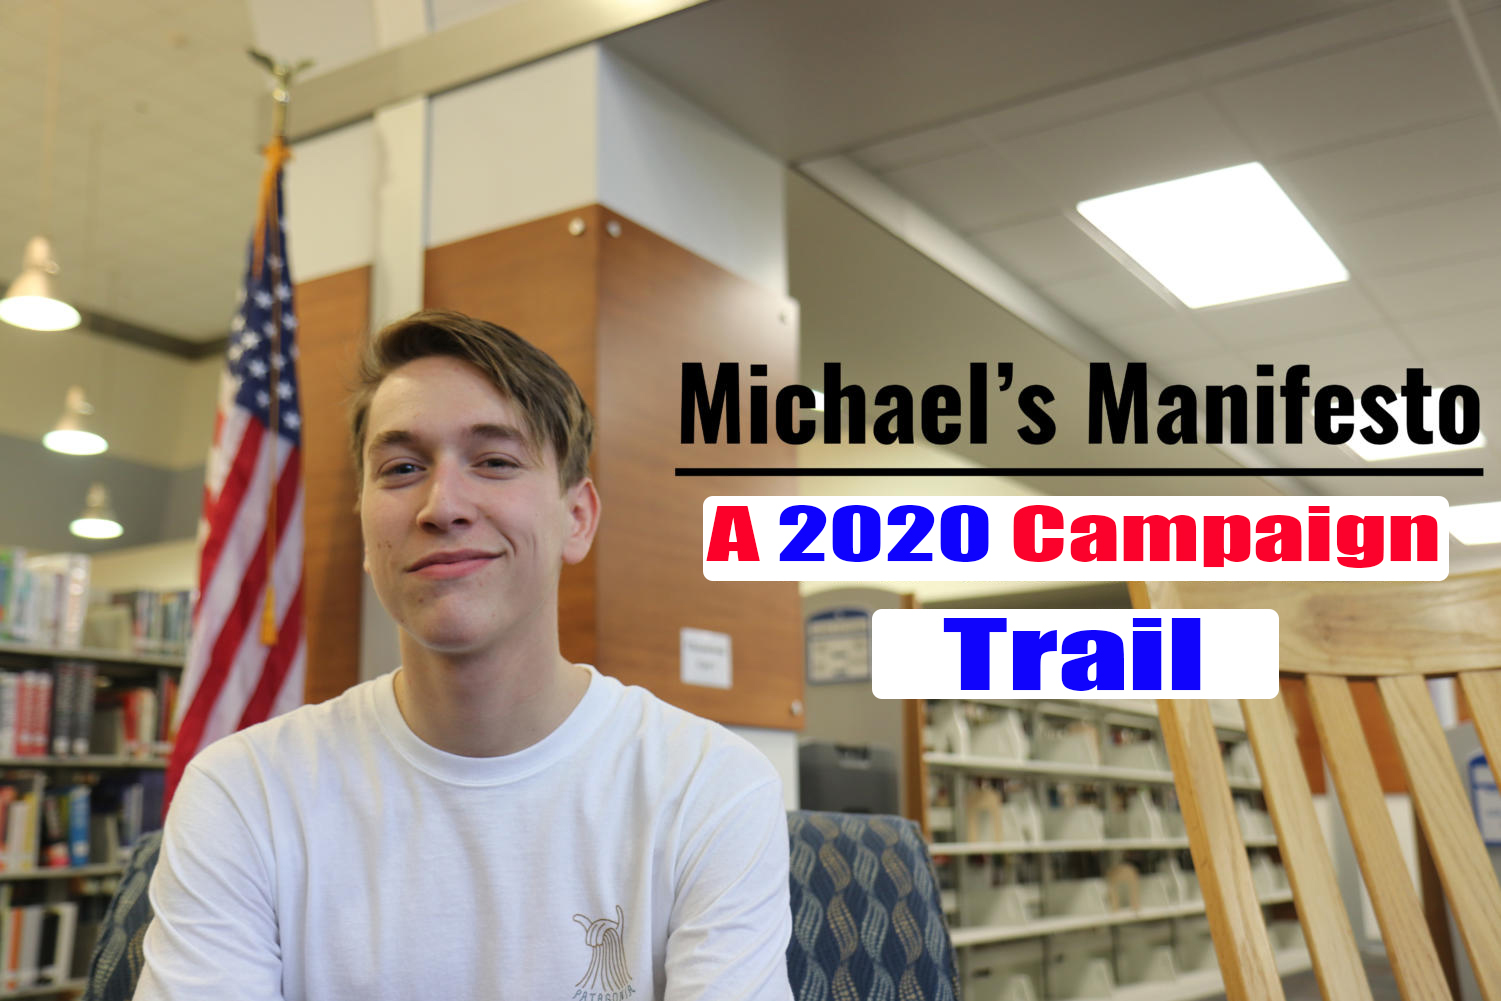 Electoral variant of the reoccurring political series, Michael's Manifesto